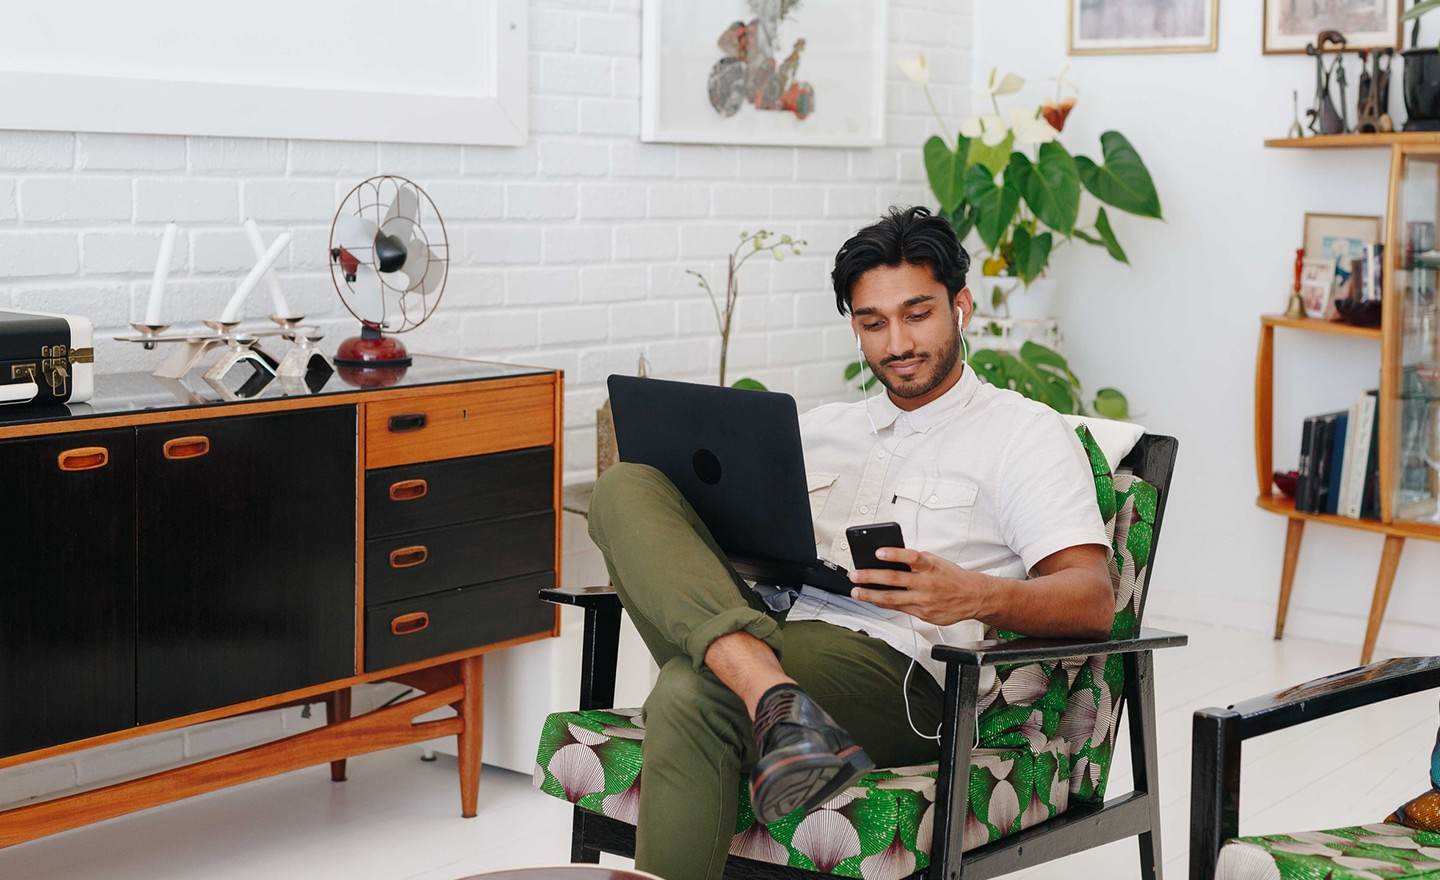 Man working at home on phone and laptop